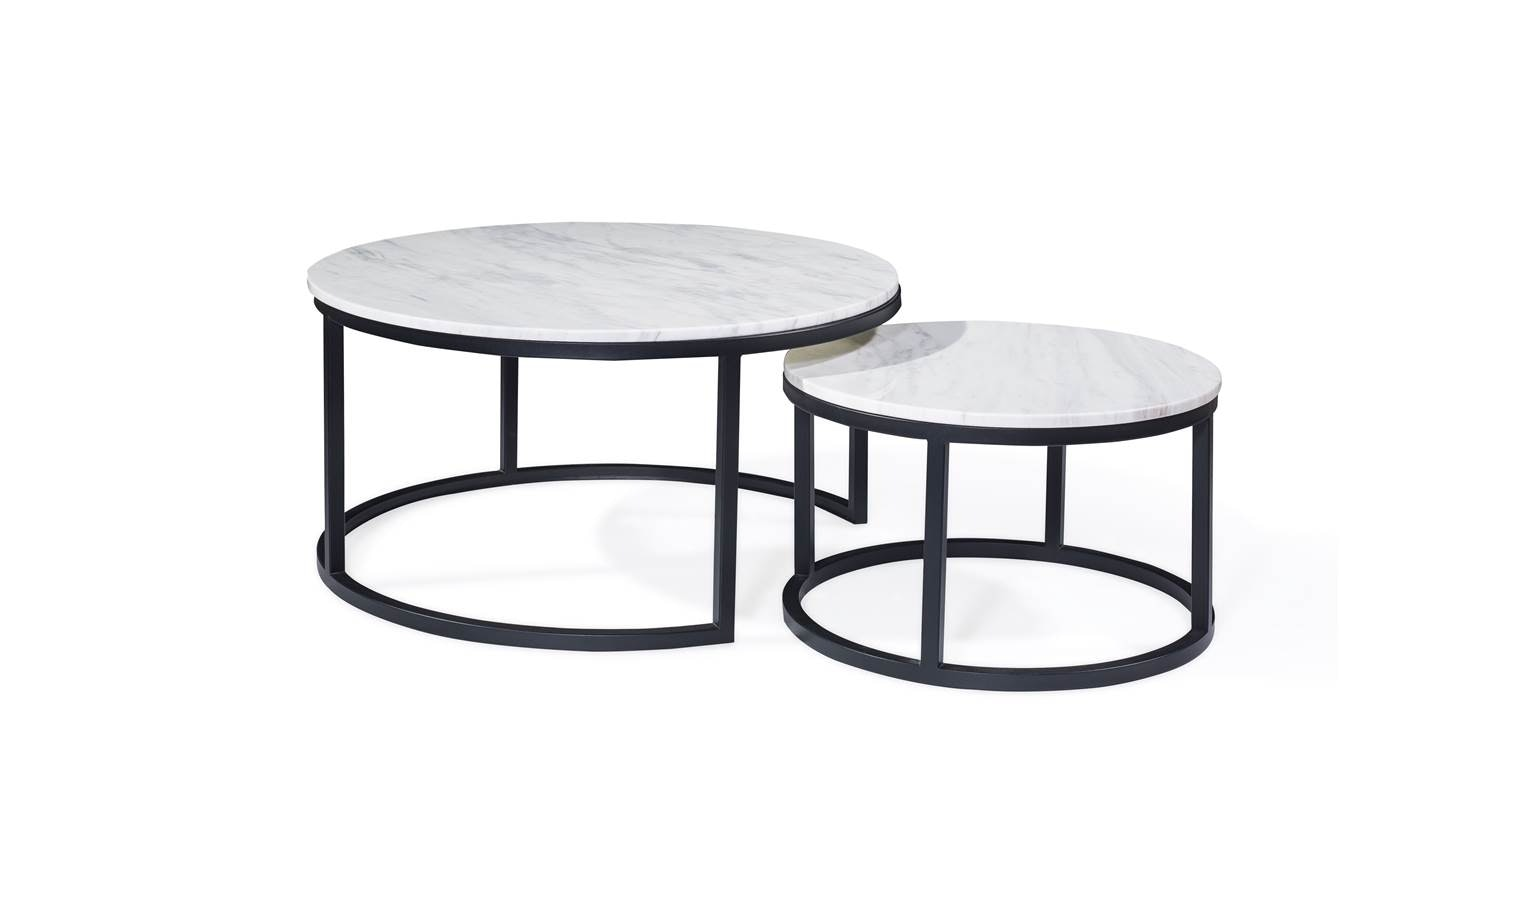 Acadian Marble Coffee Table Small Harvey Norman Singapore